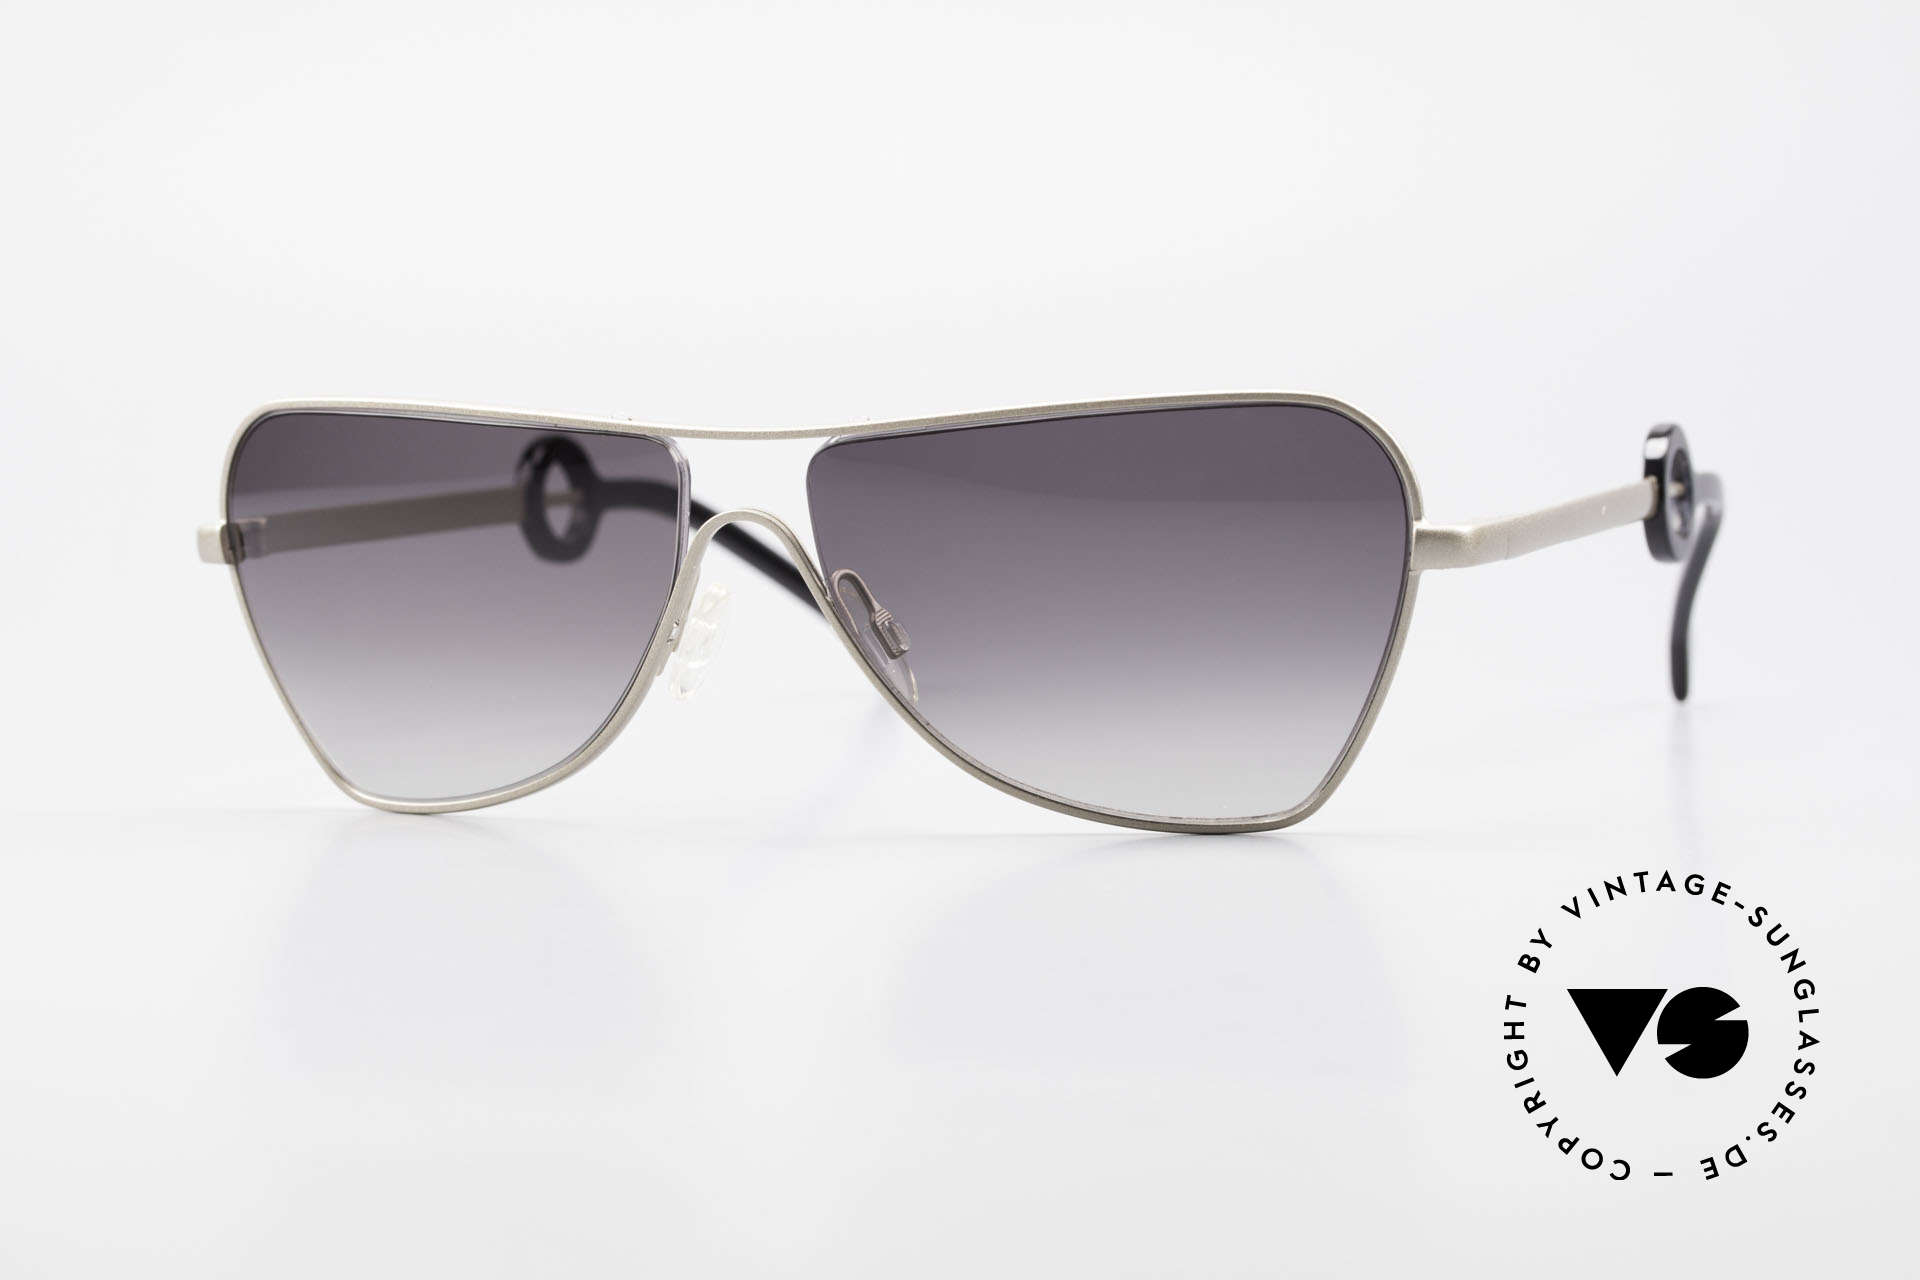 Theo Belgium Stetson Extraordinary Aviator Shades, Theo Belgium: the most self-willed brand in the world, Made for Men and Women